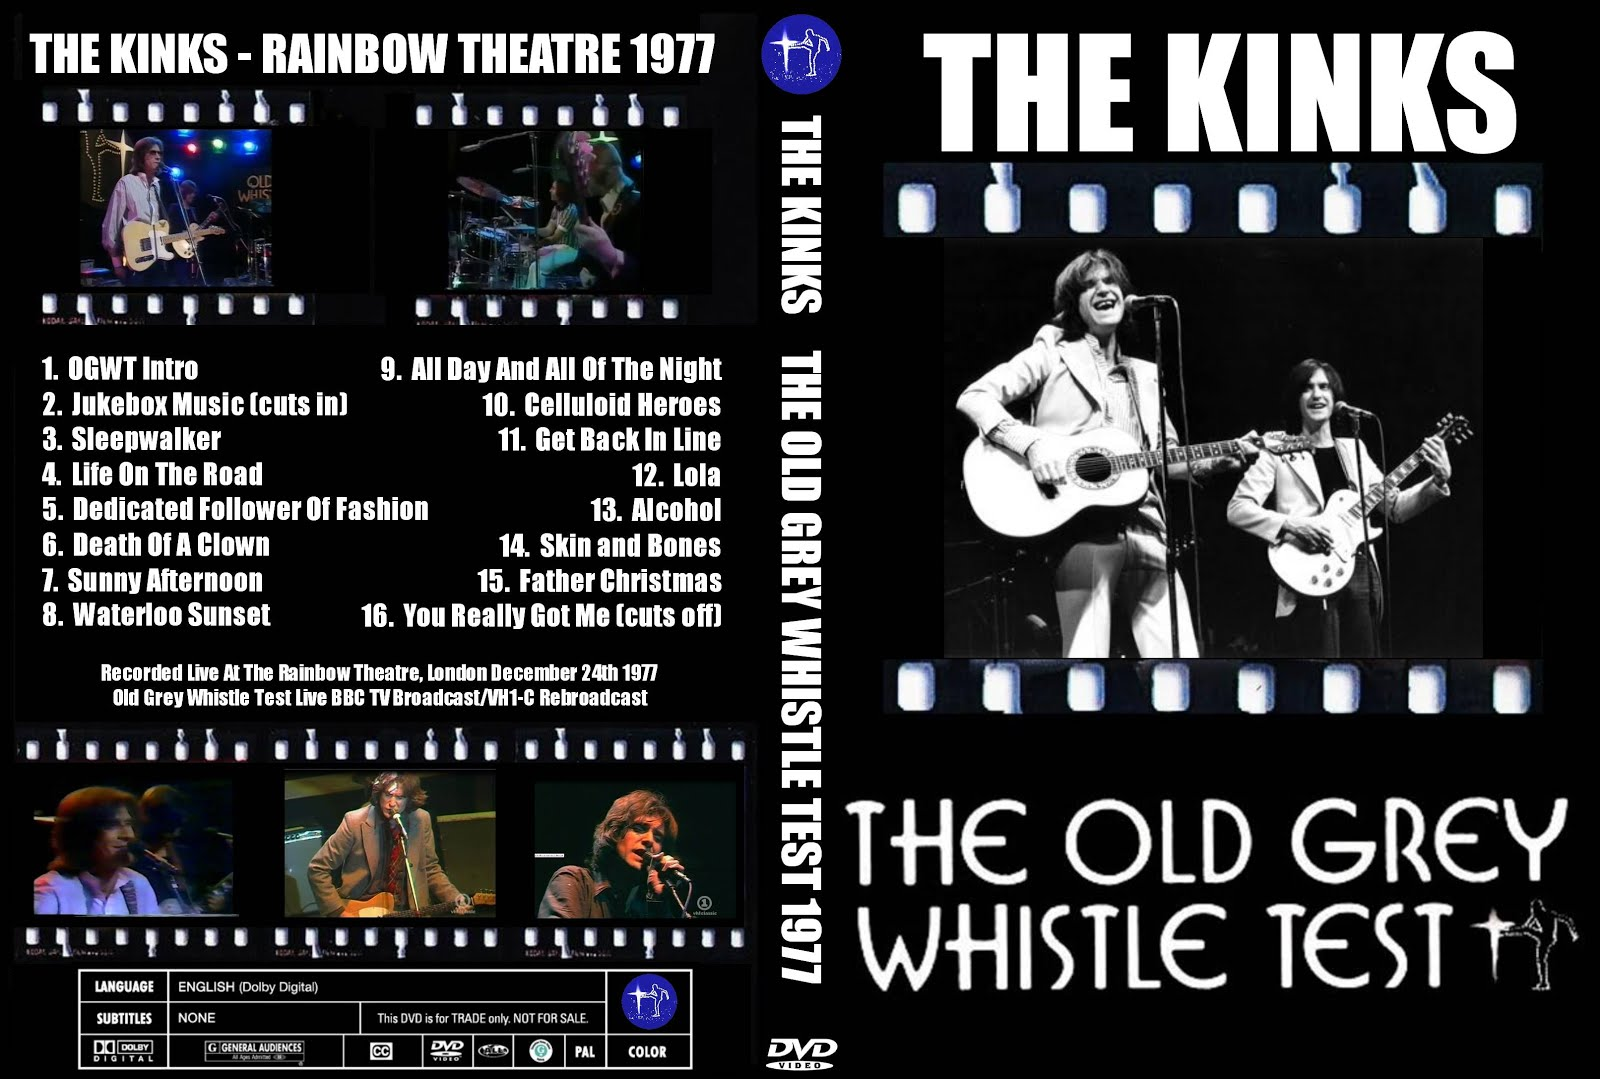 Father Christmas The Kinks.T U B E The Kinks 1977 12 24 London Uk Dvdfull Pro Shot